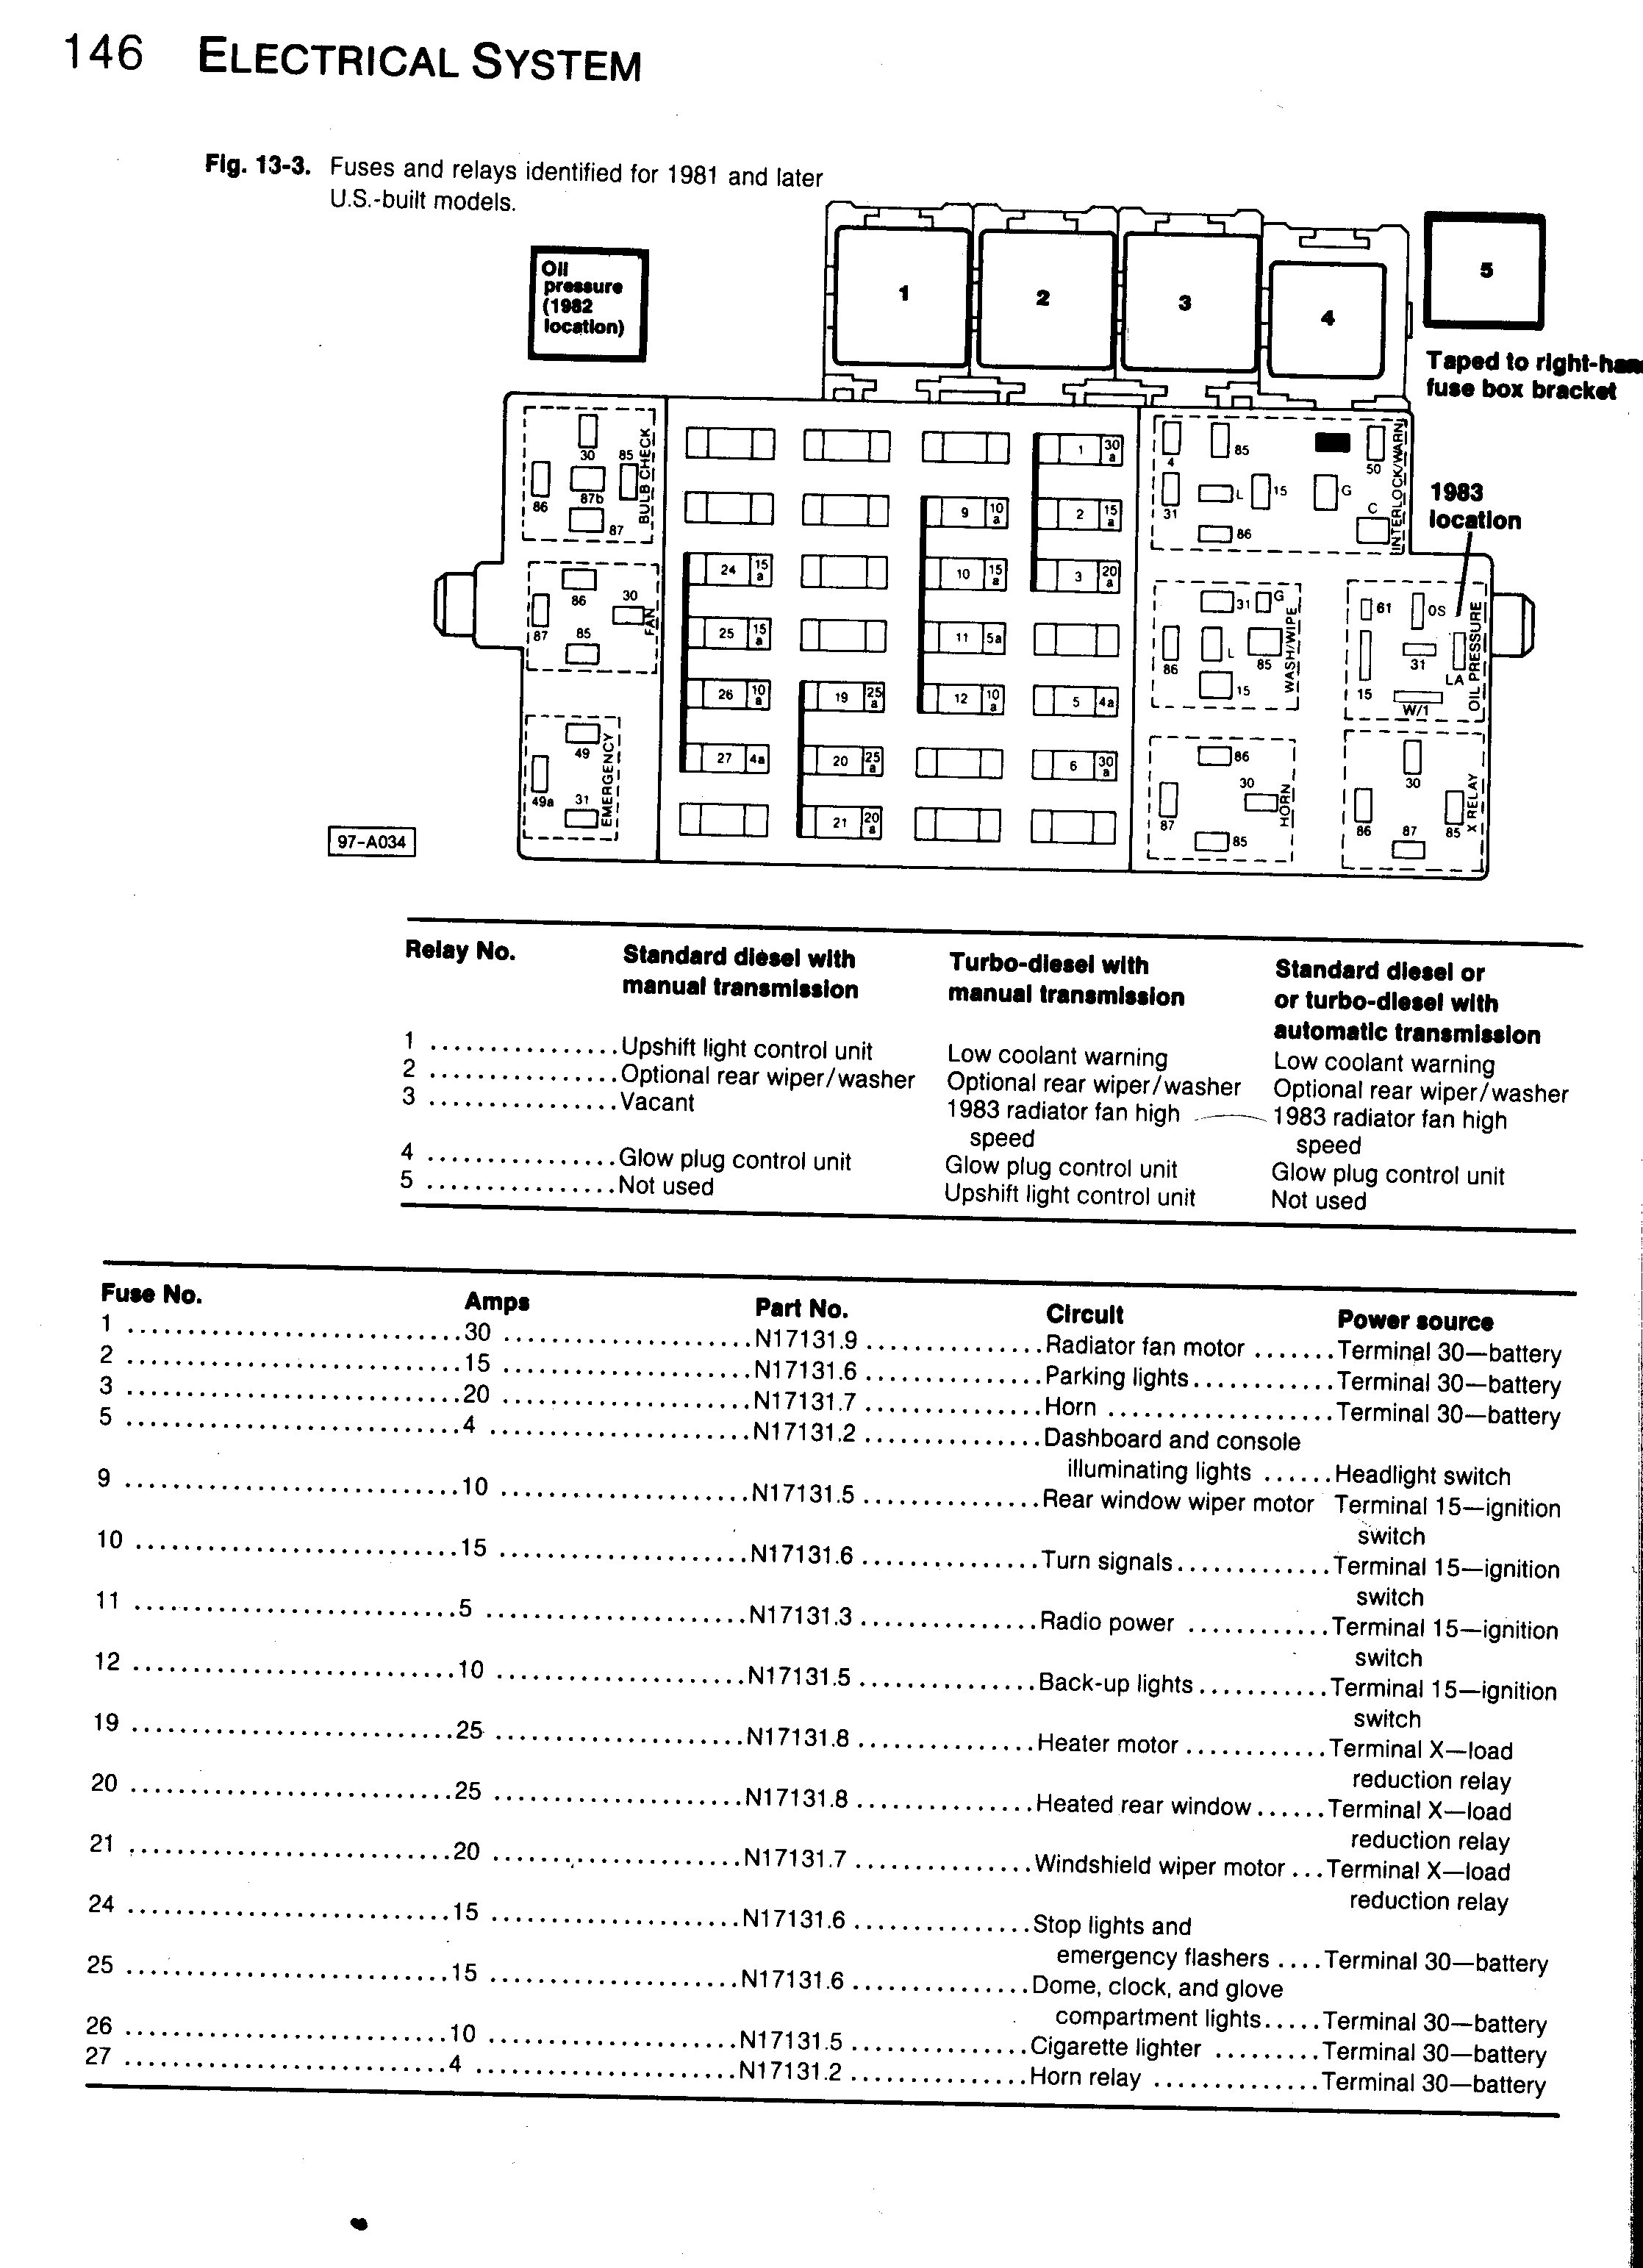 2014 Fiesta Fuse Box Diagram Download Wiring Diagrams Kenworth T680 Vw Jetta Se Ford 2015